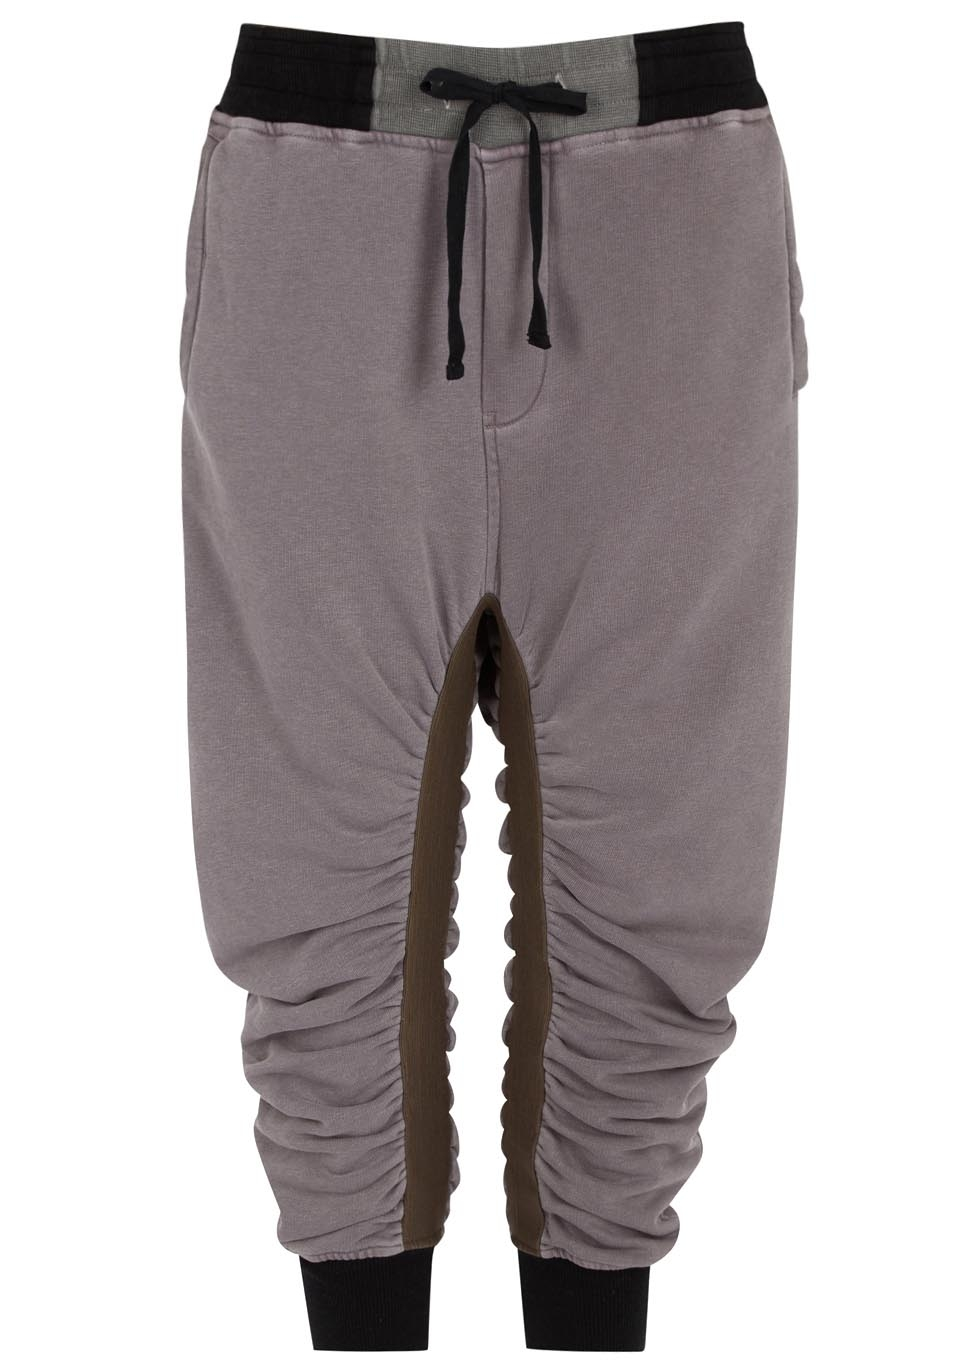 Haider Ackermann ruched jogging trousers, £545